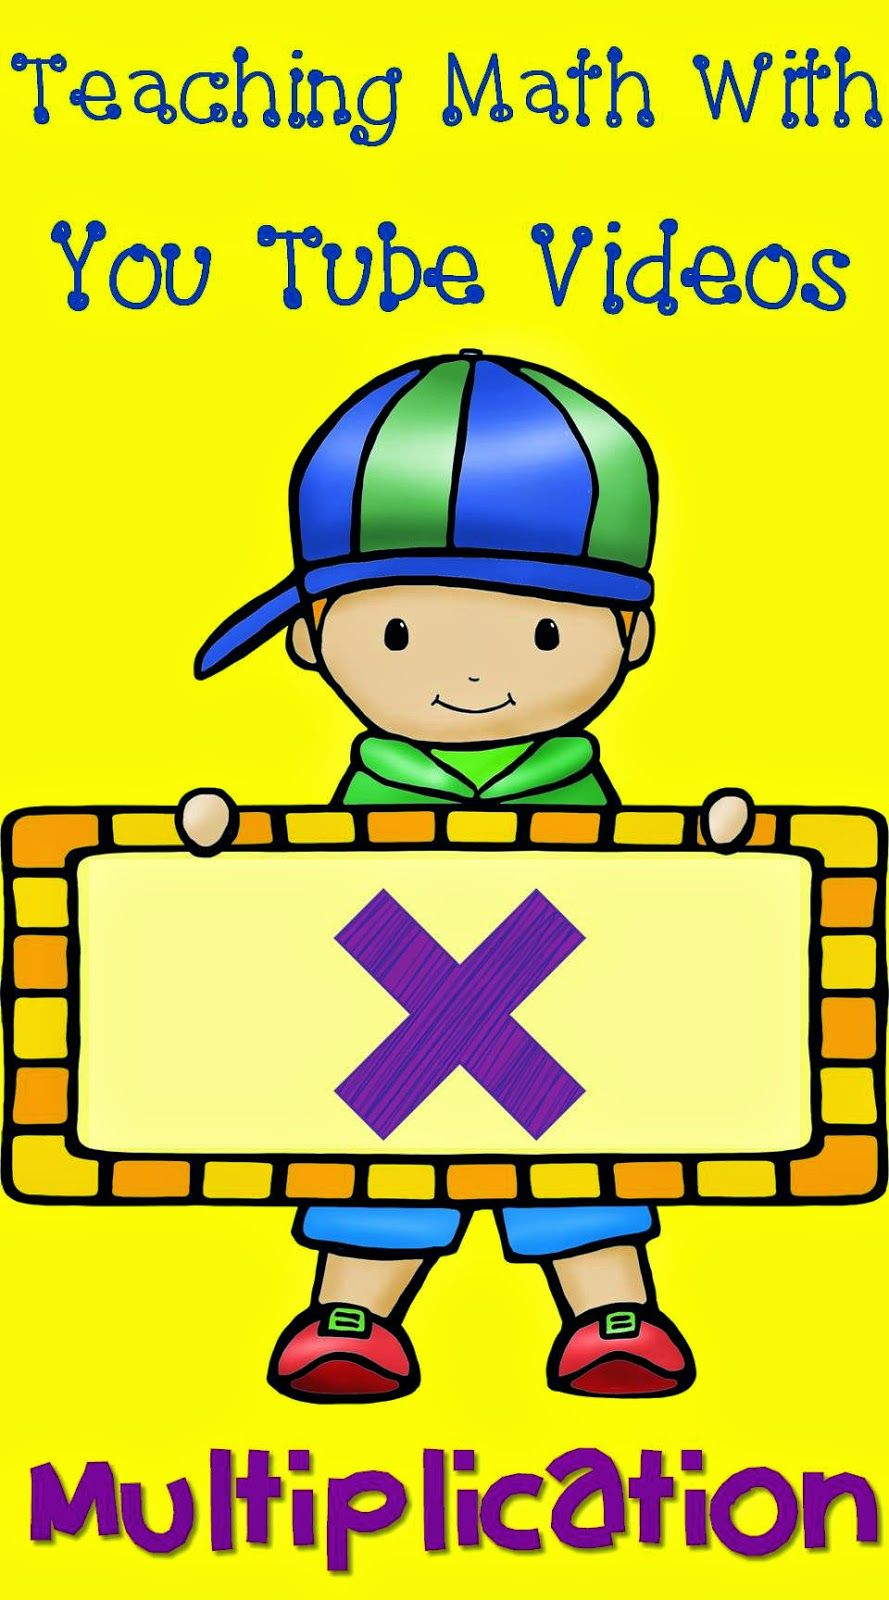 Multiplication clipart teaching math. The elementary maniac with